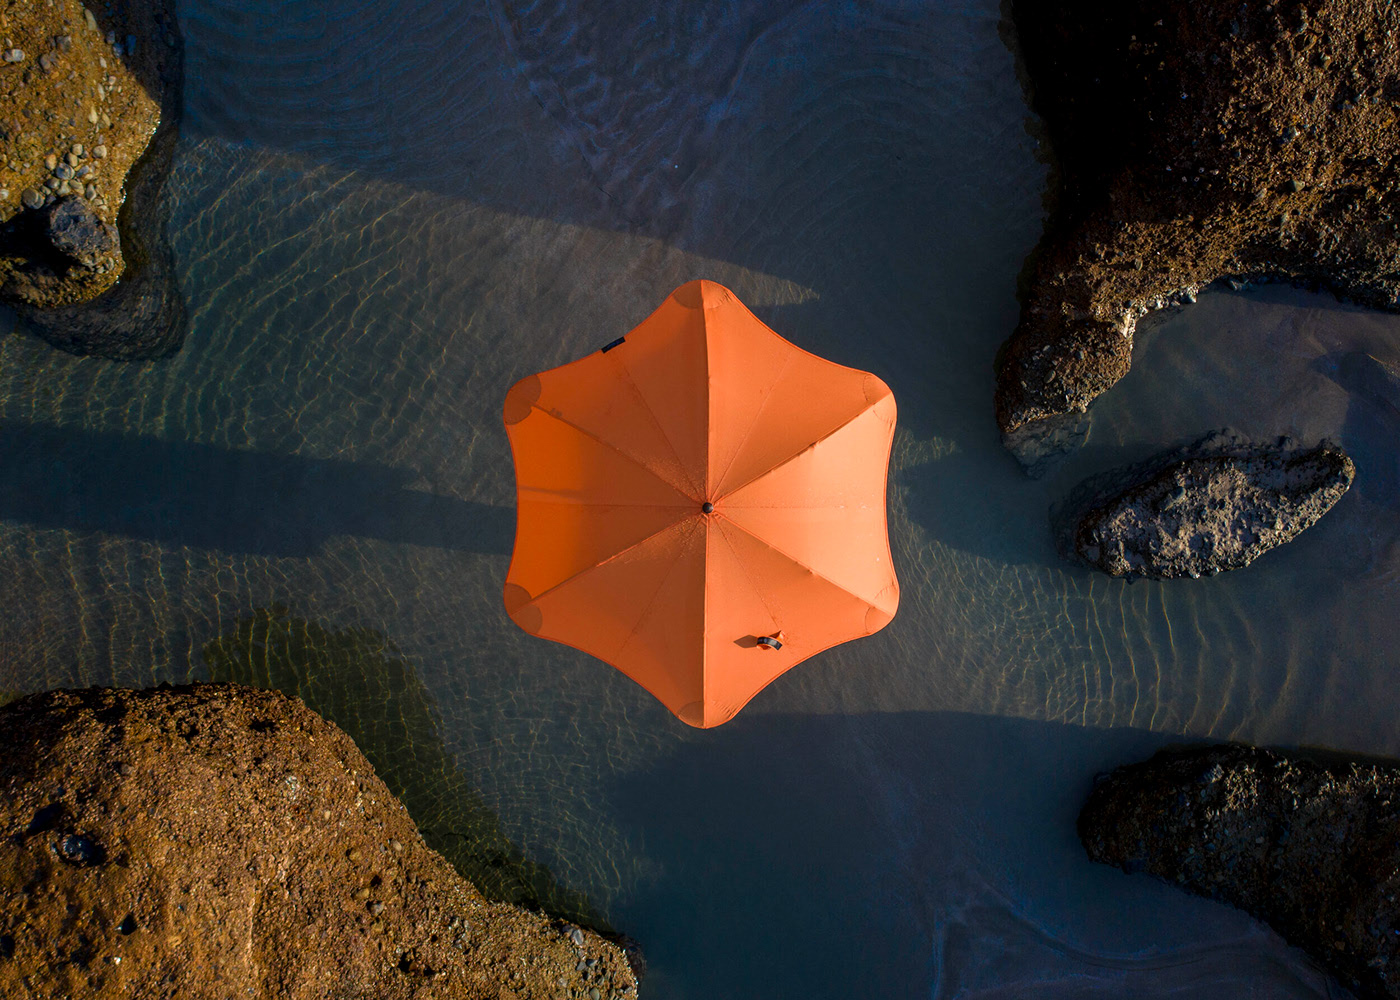 Blunt Umbrellas by Petra Leary